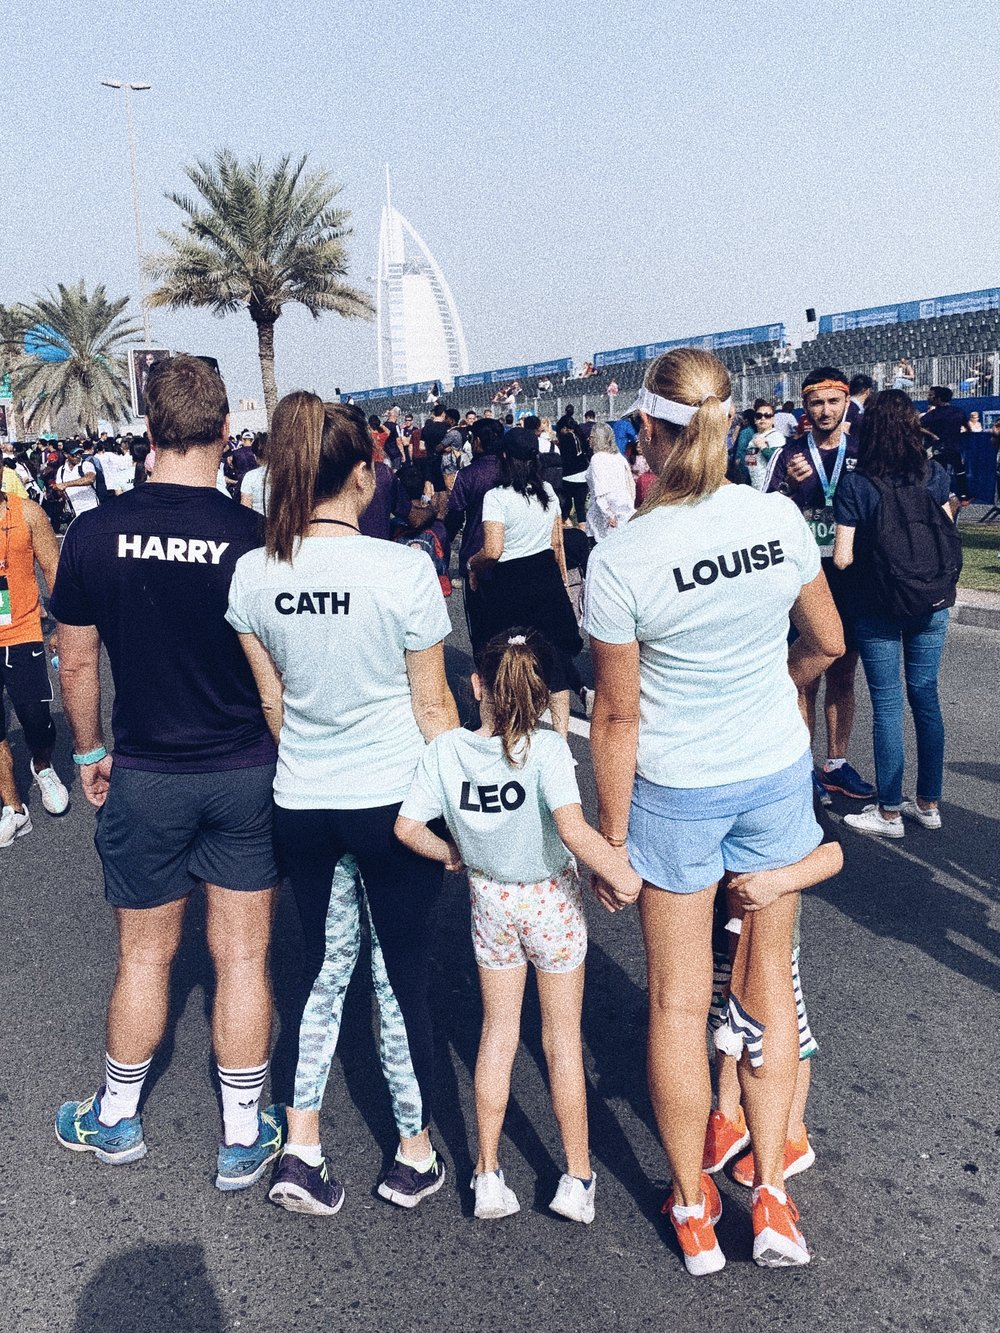 Uncle Harry, Aunty Cath, Leo and me in matching Adidas race shirts at the start line of the Dubai Standard Chartered Marathon 2019